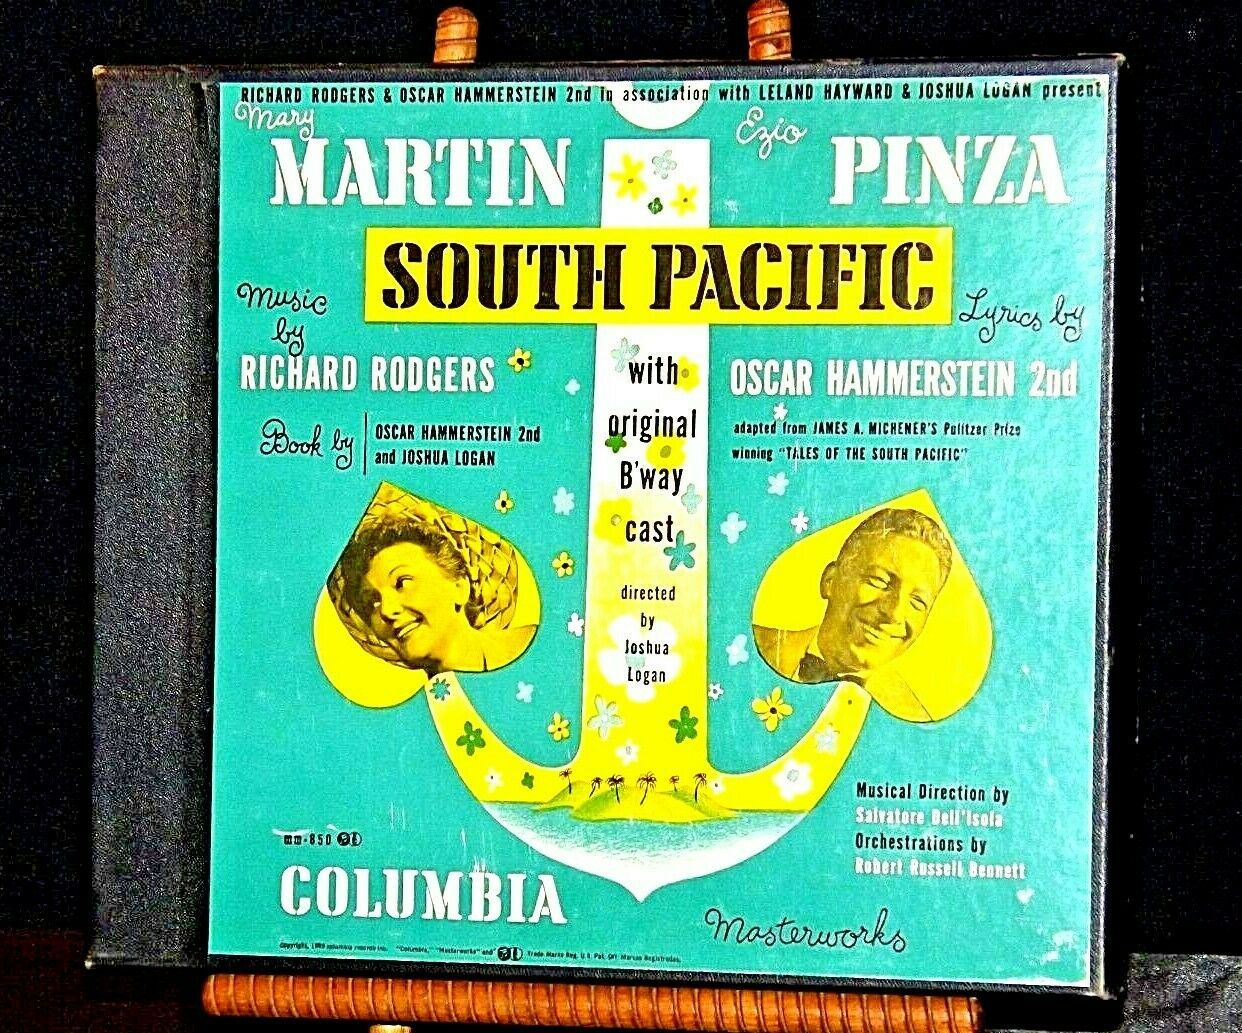 Antique Masterworksof Columbia Records 1949 Southern Pacific AA19-1493